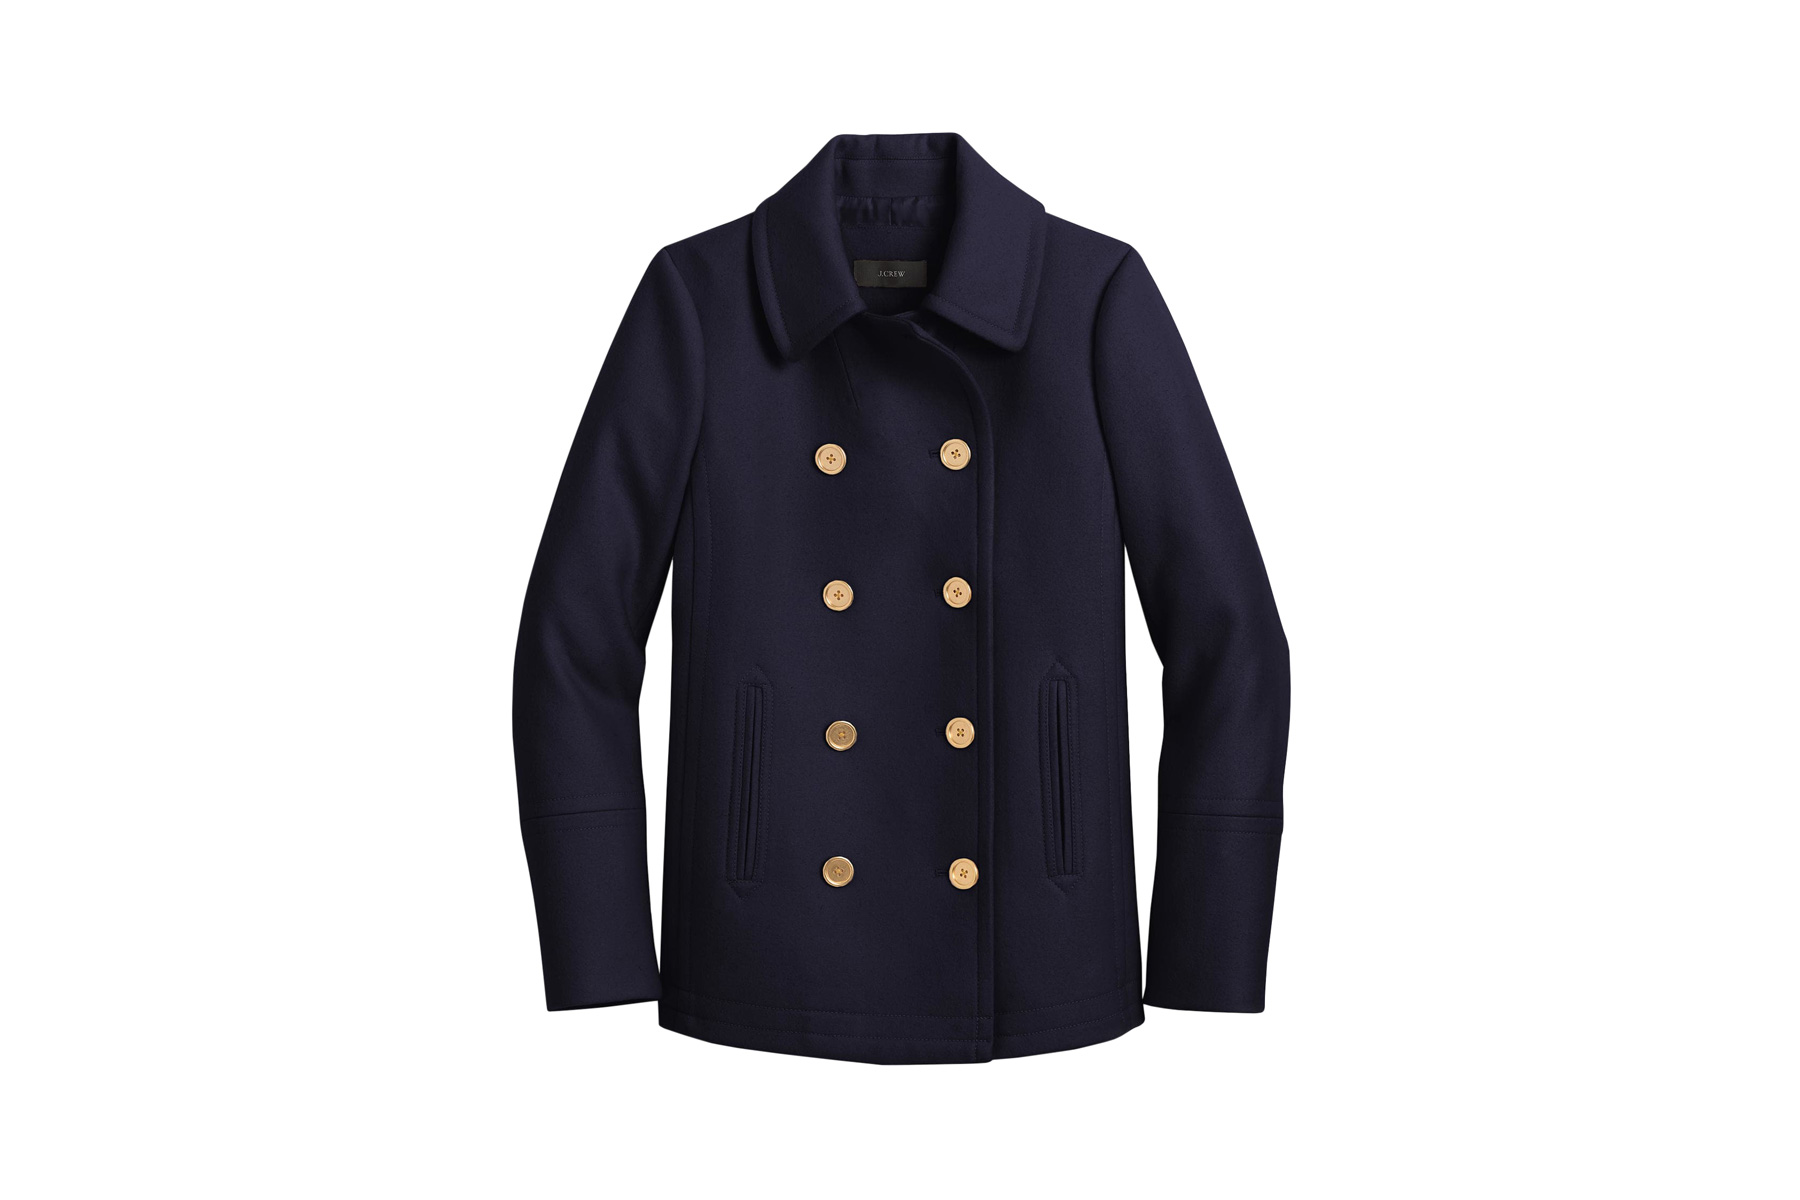 d7507142a7 5 Winter Coats to Buy During J.Crew's Massive Sale